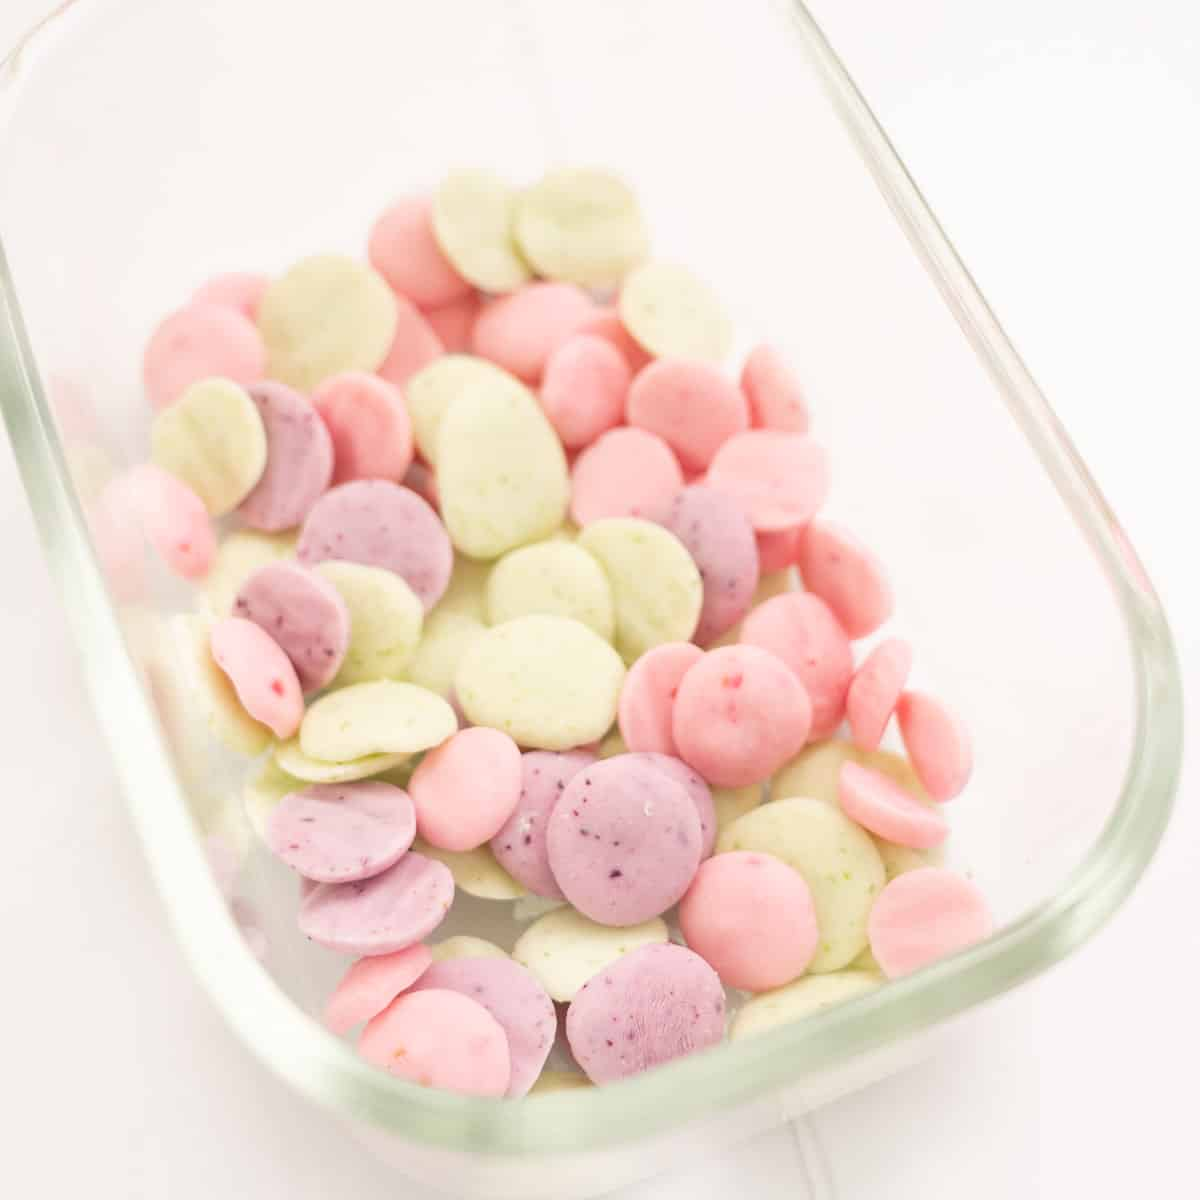 Three flavours (green, purple, pink) of baby yoghurt melts in a glass freezer container.